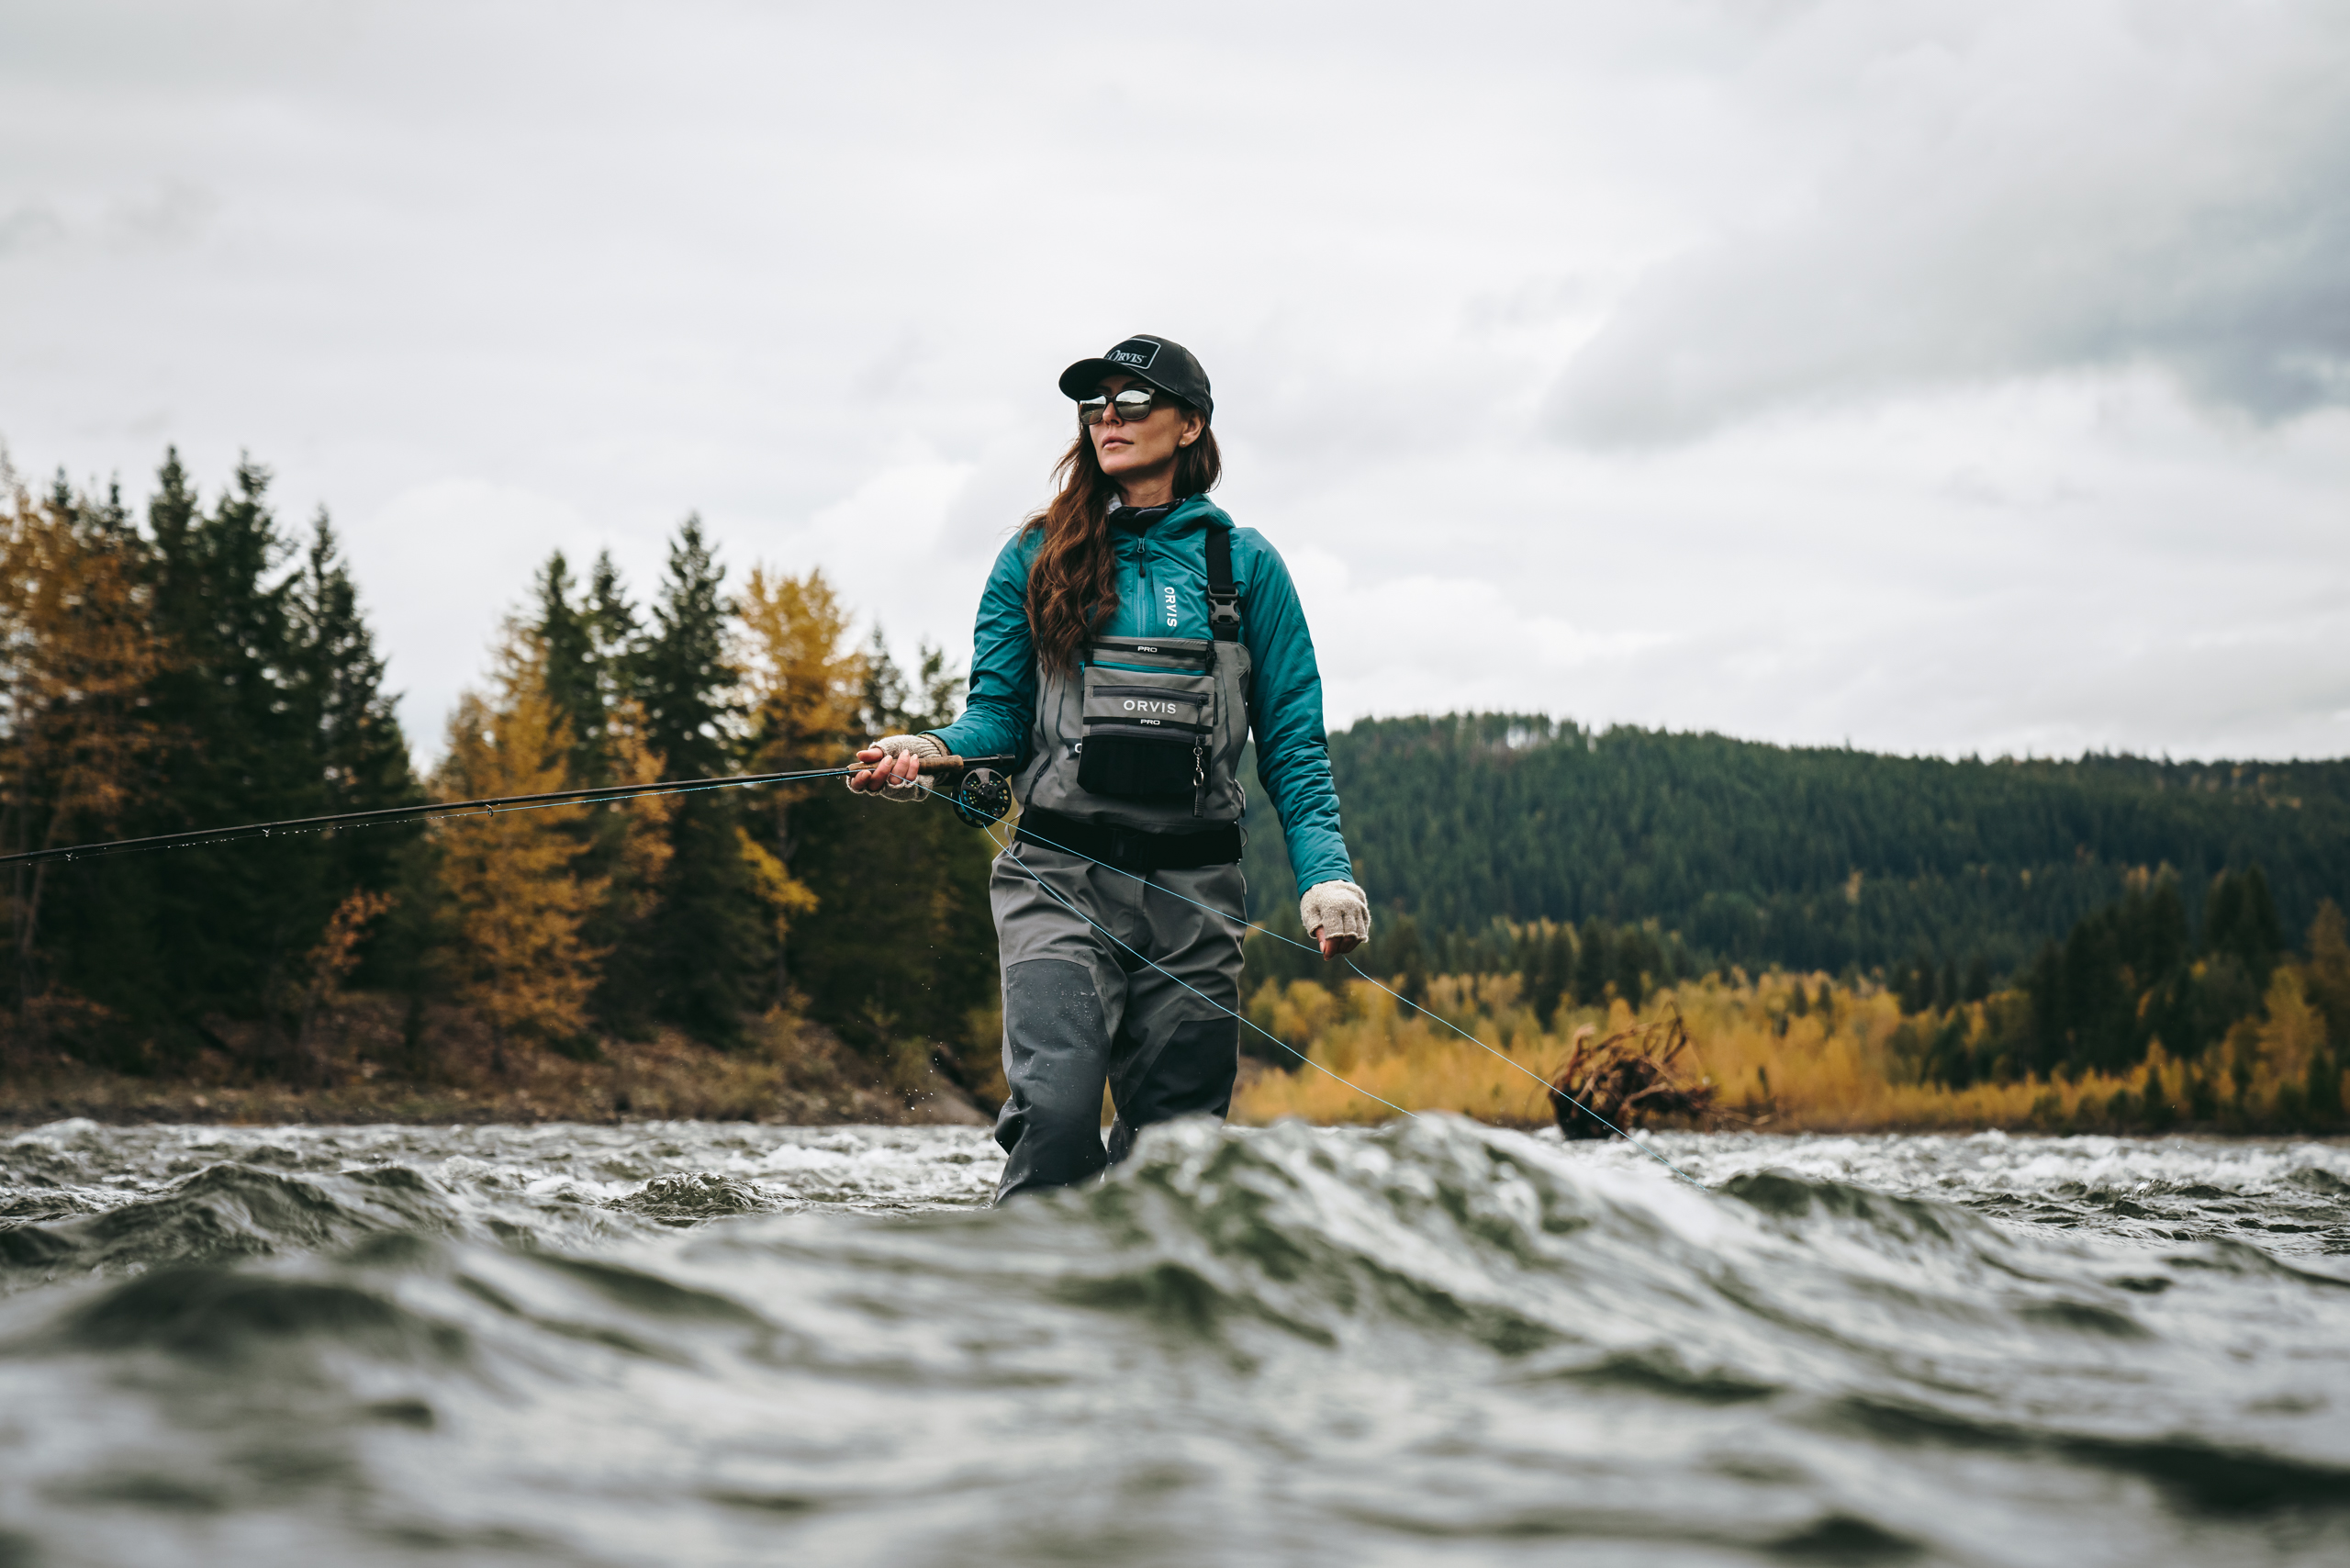 Product Spotlight: Orvis Women's PRO Wader - Flylords Mag